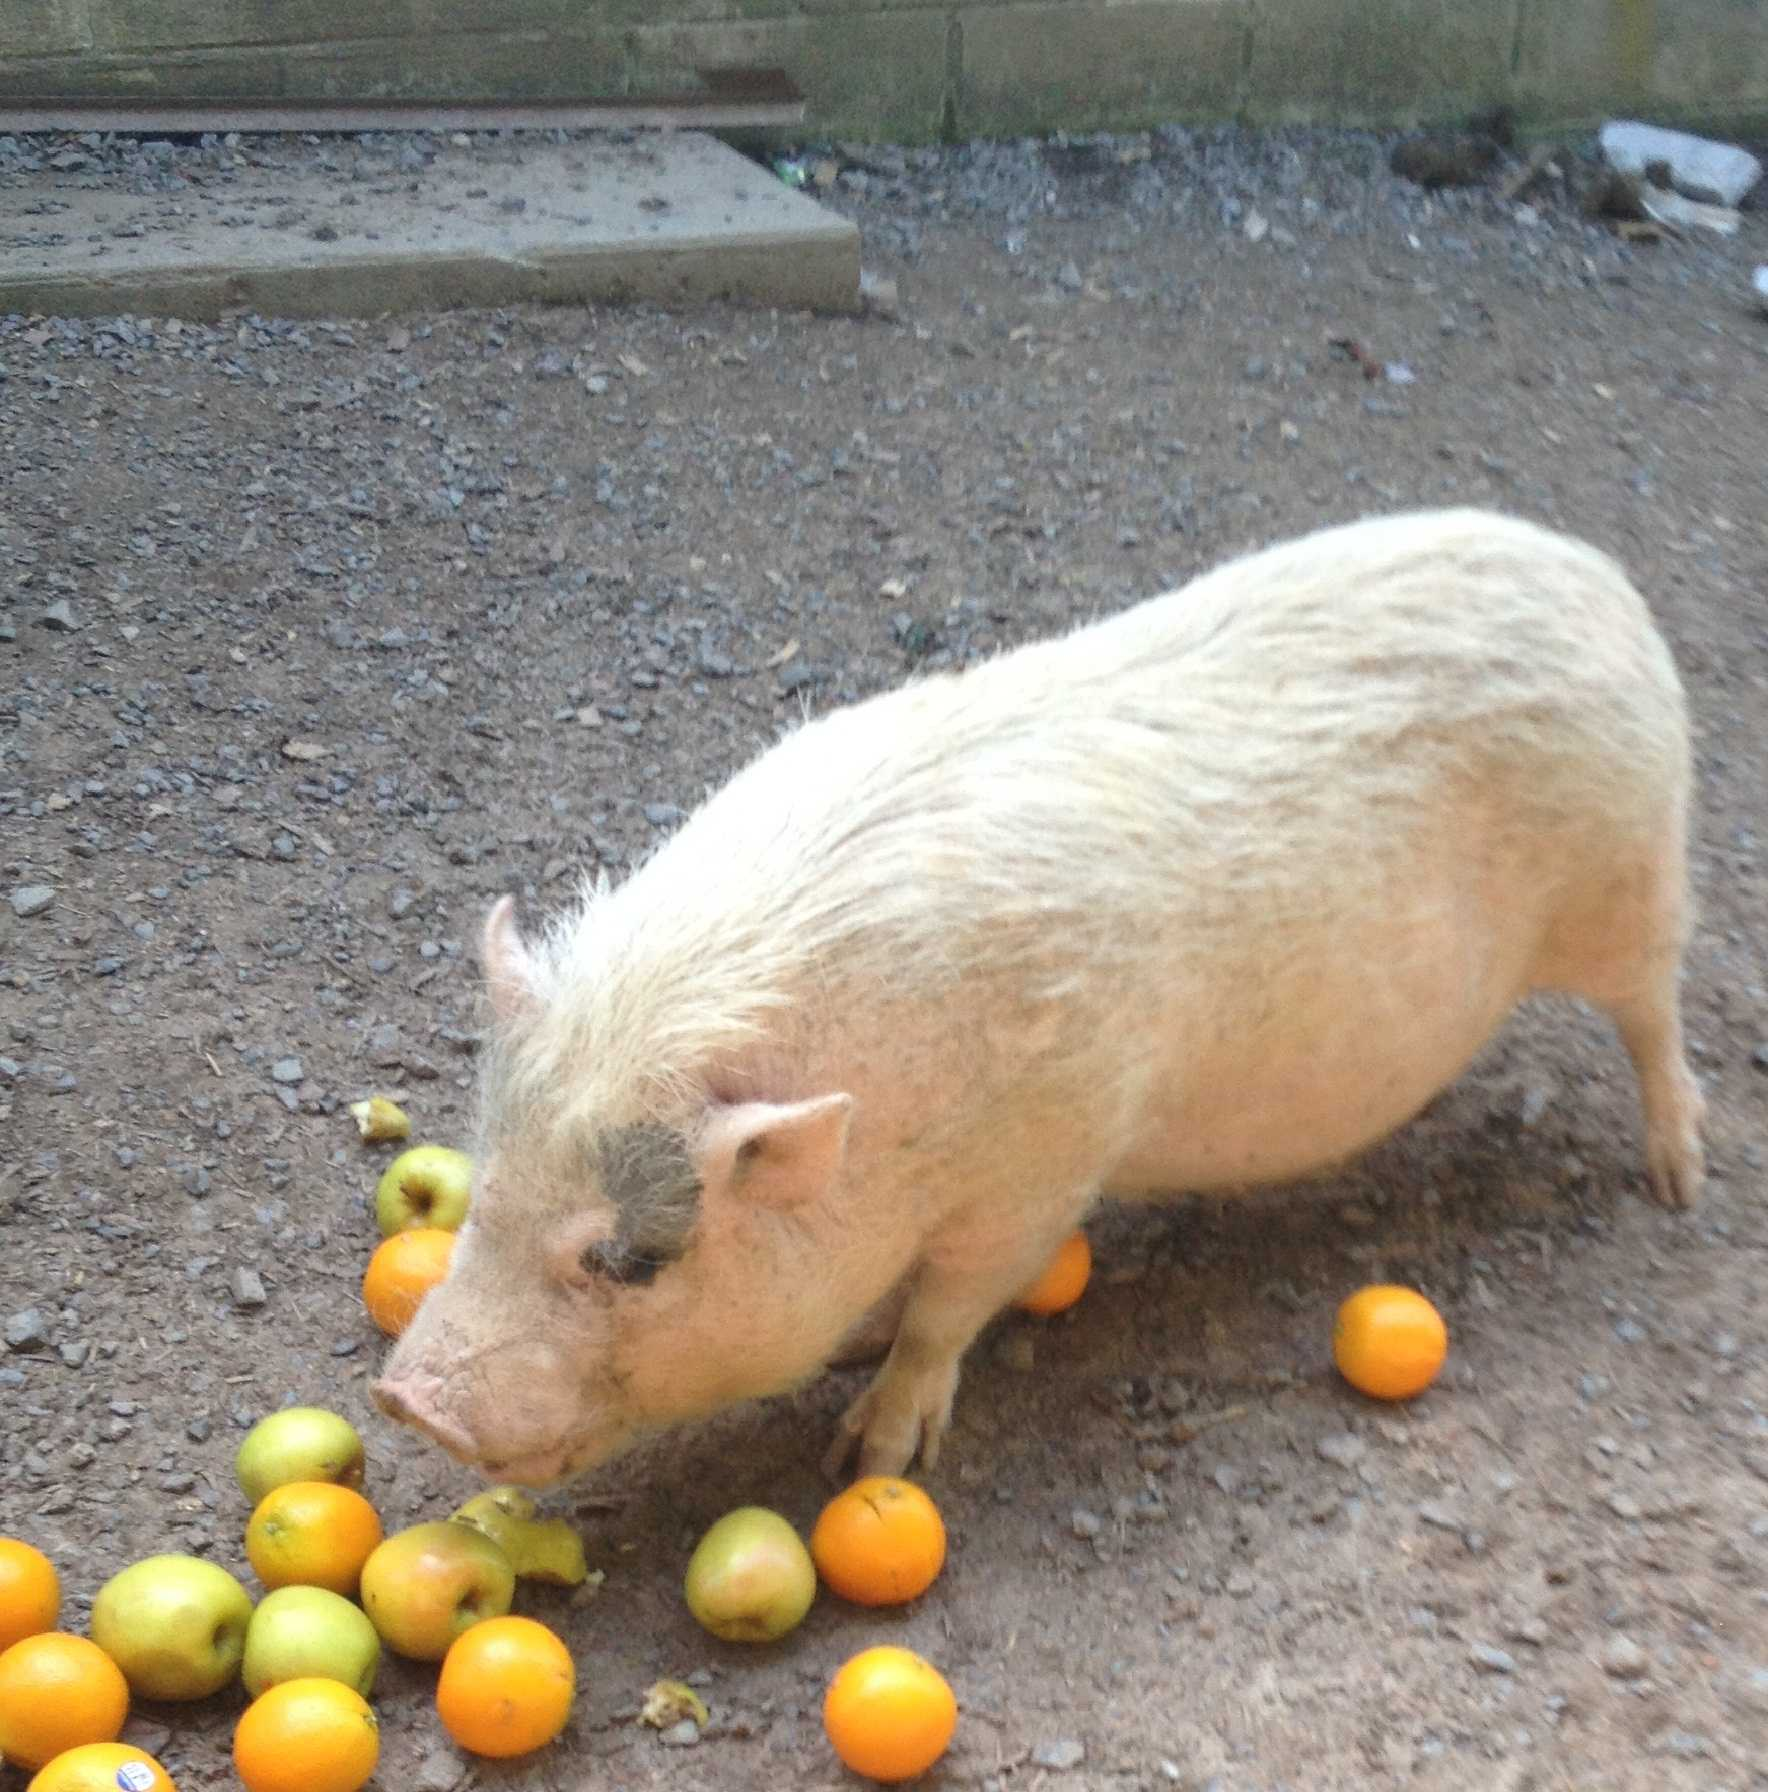 Karen Burall's pig, Emily, enjoys a tasty treat of apples and oranges.